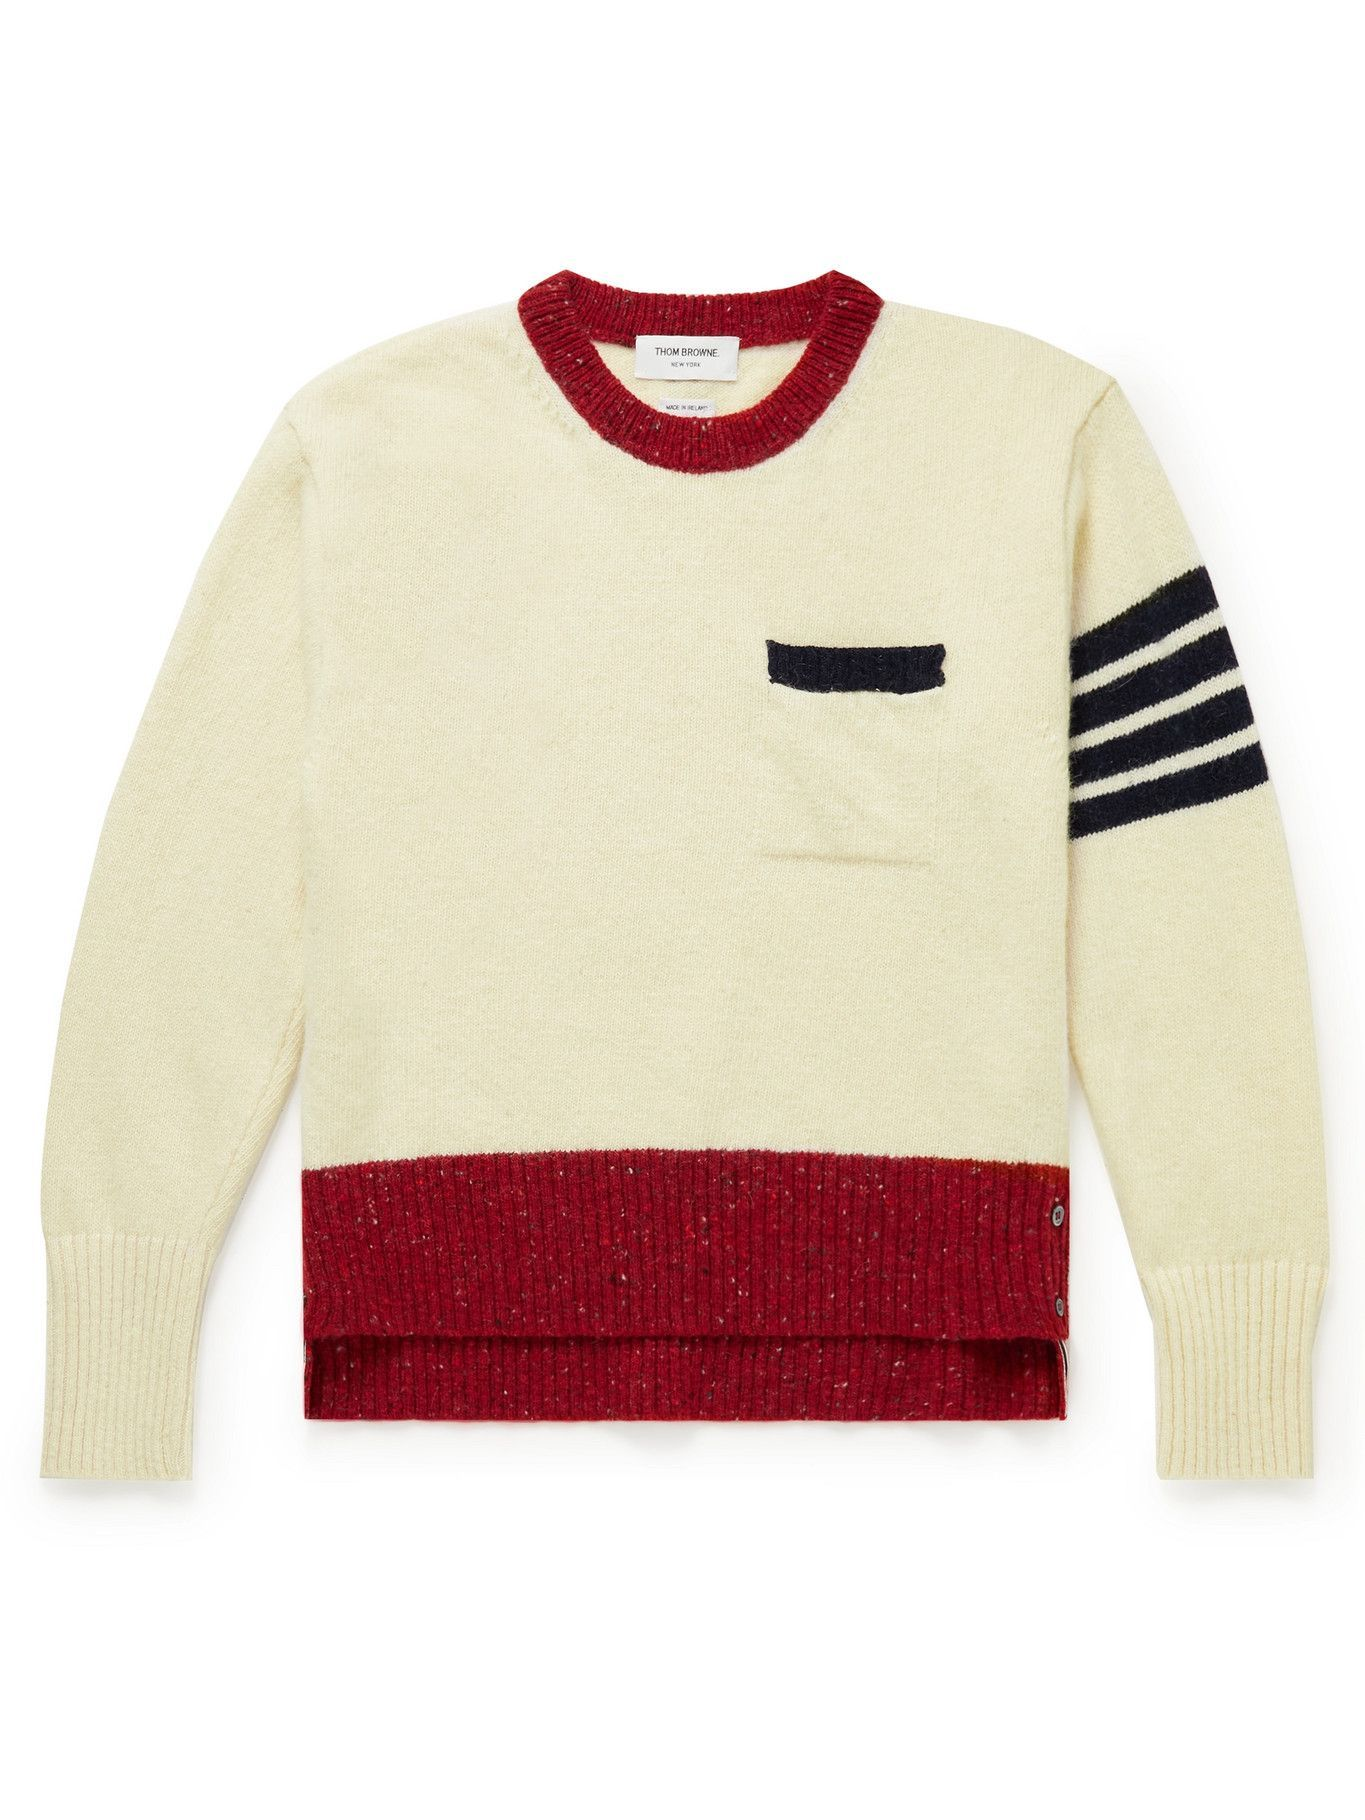 Thom Browne - Striped Wool and Mohair-Blend Sweater - White